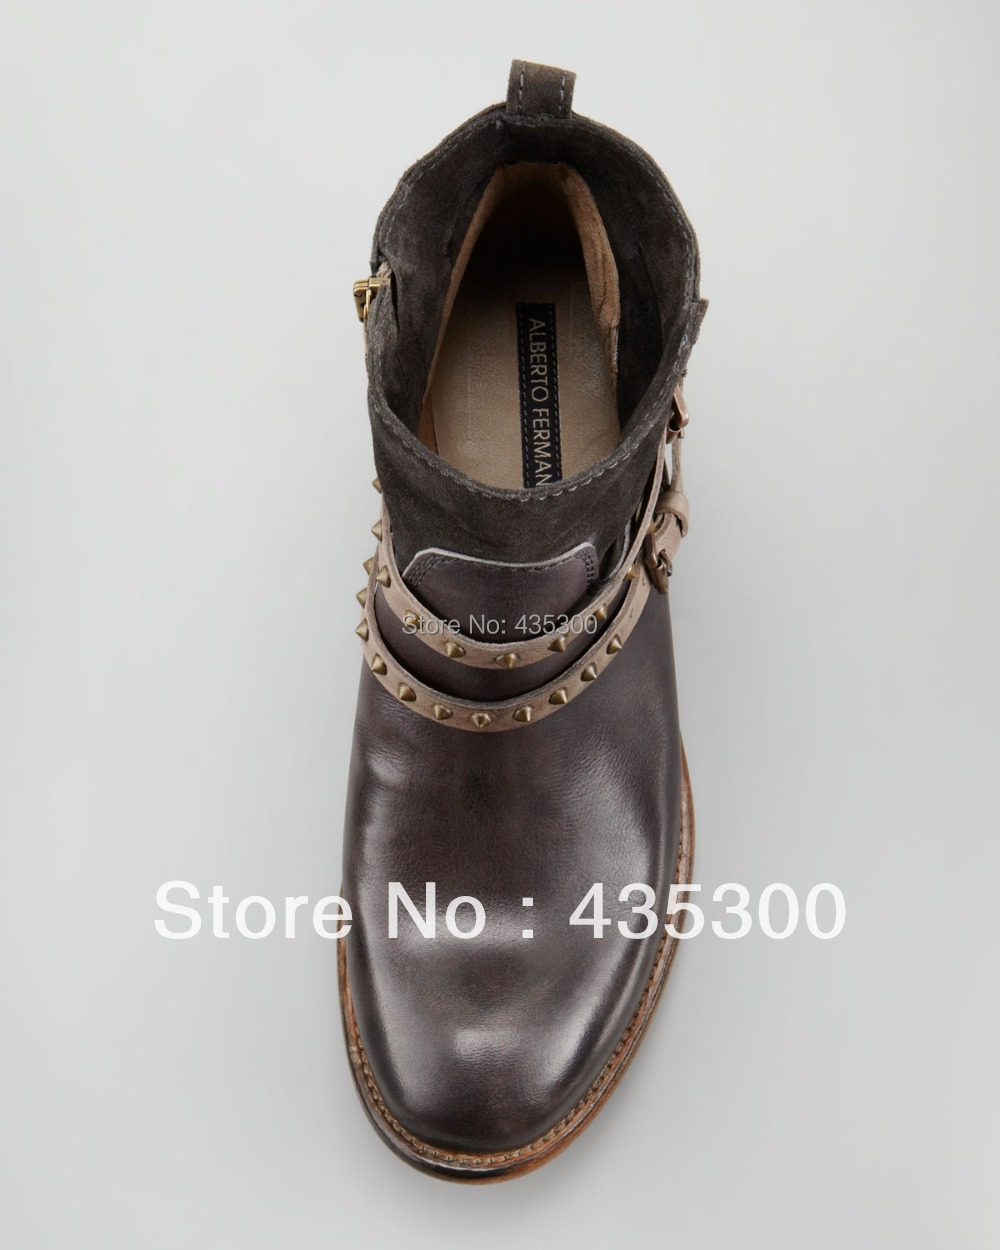 cb25b233f07 Wholesale Women's Short Boots Ankle Boots Alberto Fermani Emma Stud Strap  Flat Boot, Anthracite Real Cowhide Leather Booties-in Ankle Boots from  Shoes on ...